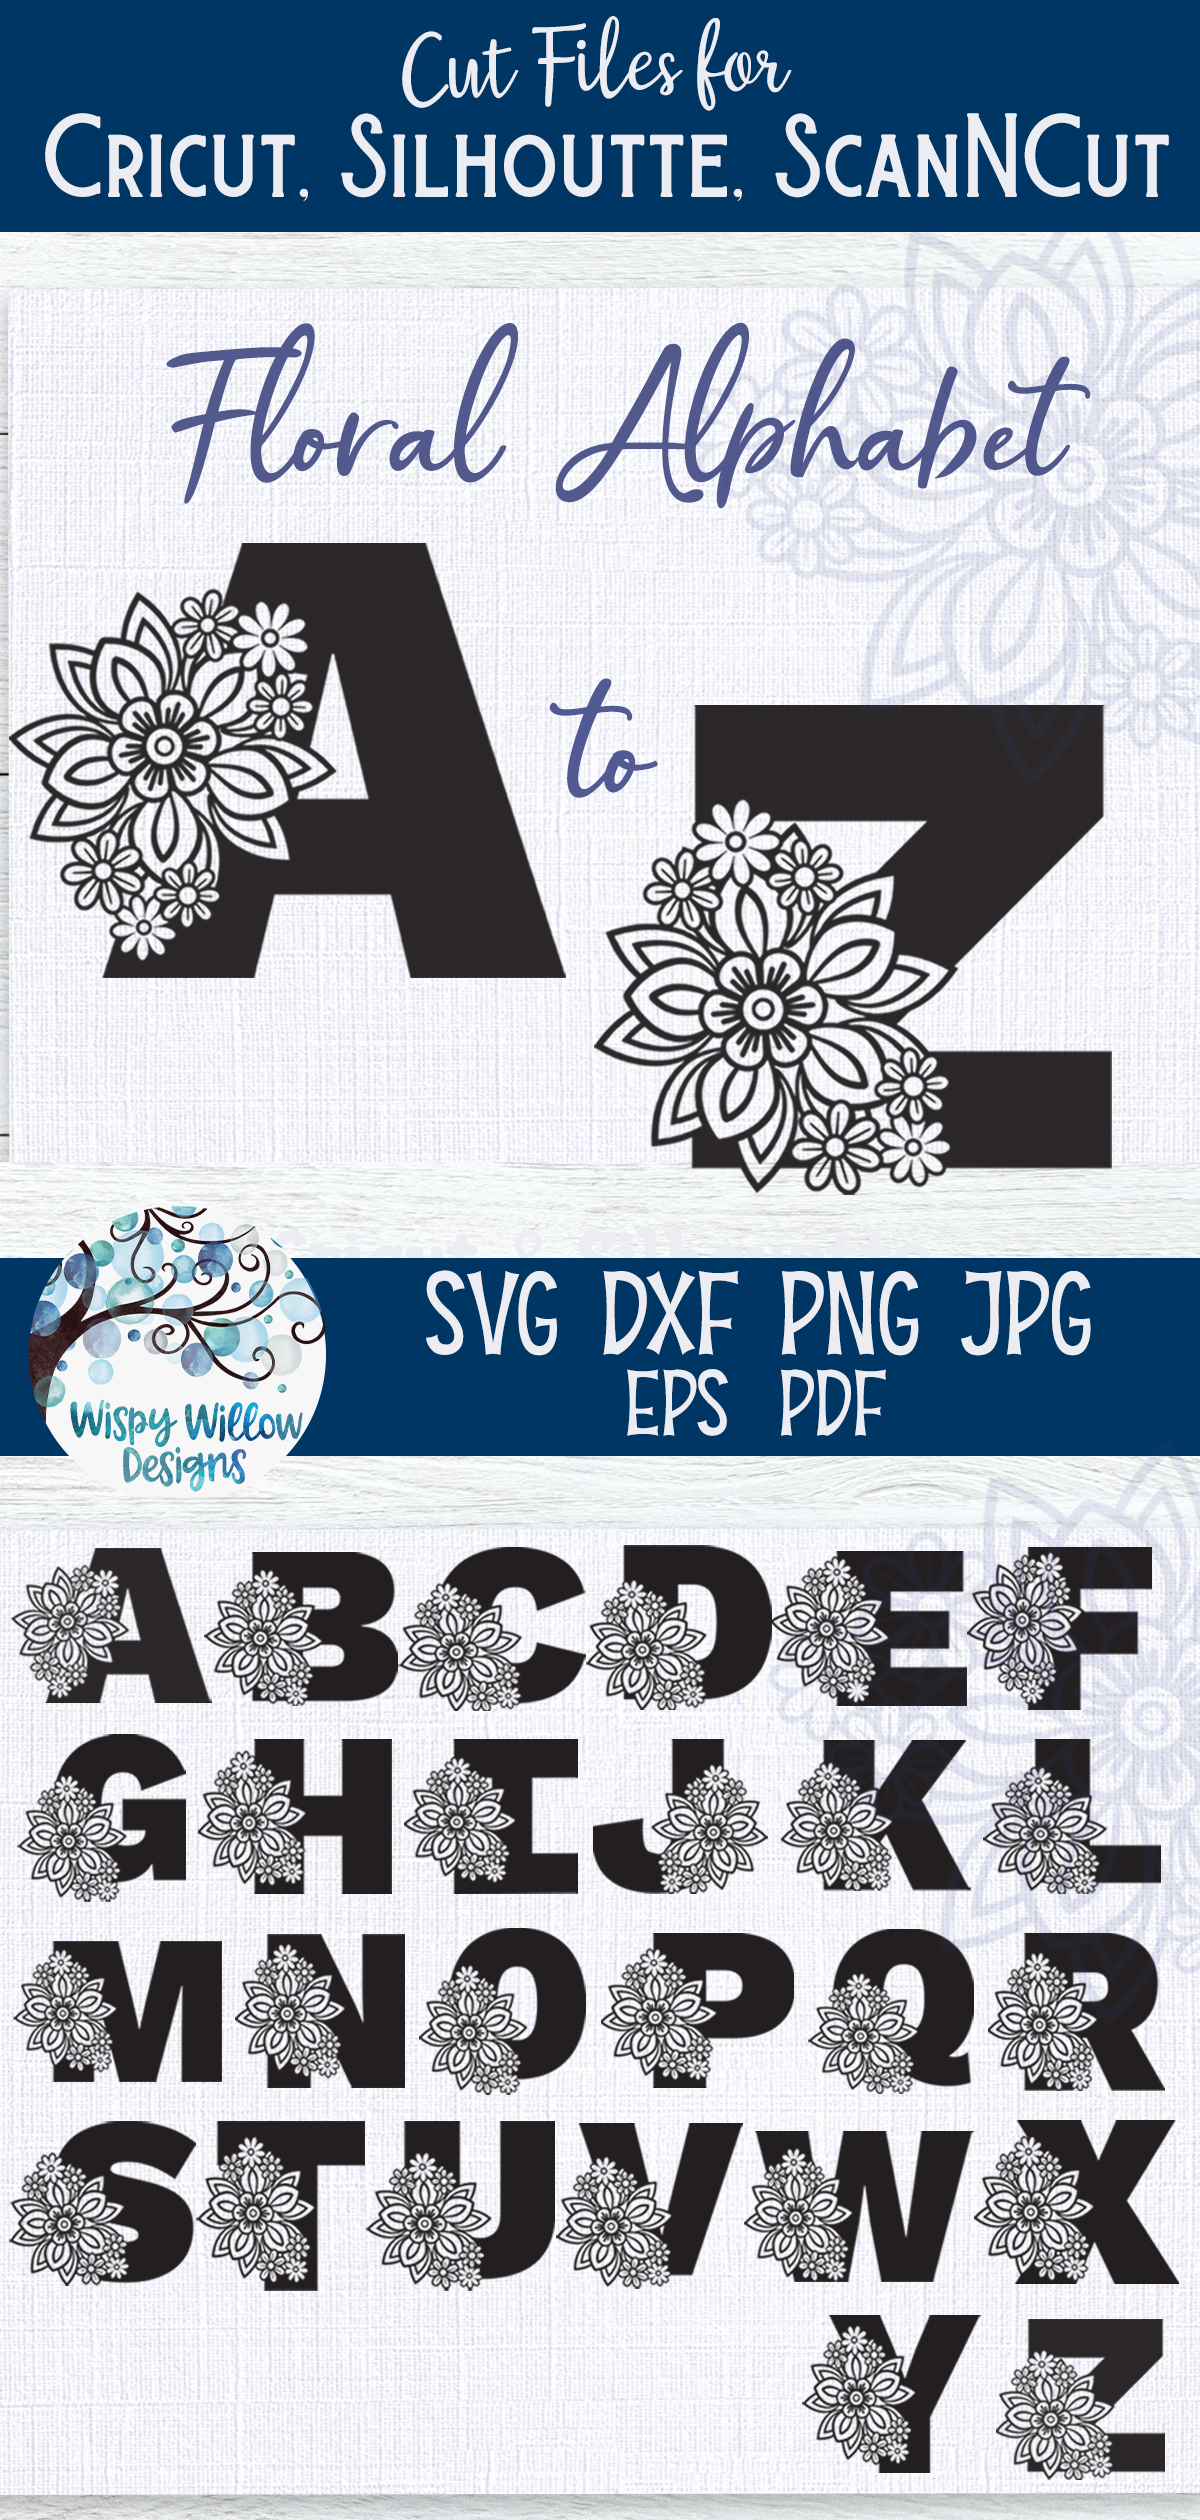 Floral Alphabet SVG Bundle | A to Z Floral Letters SVG example image 5